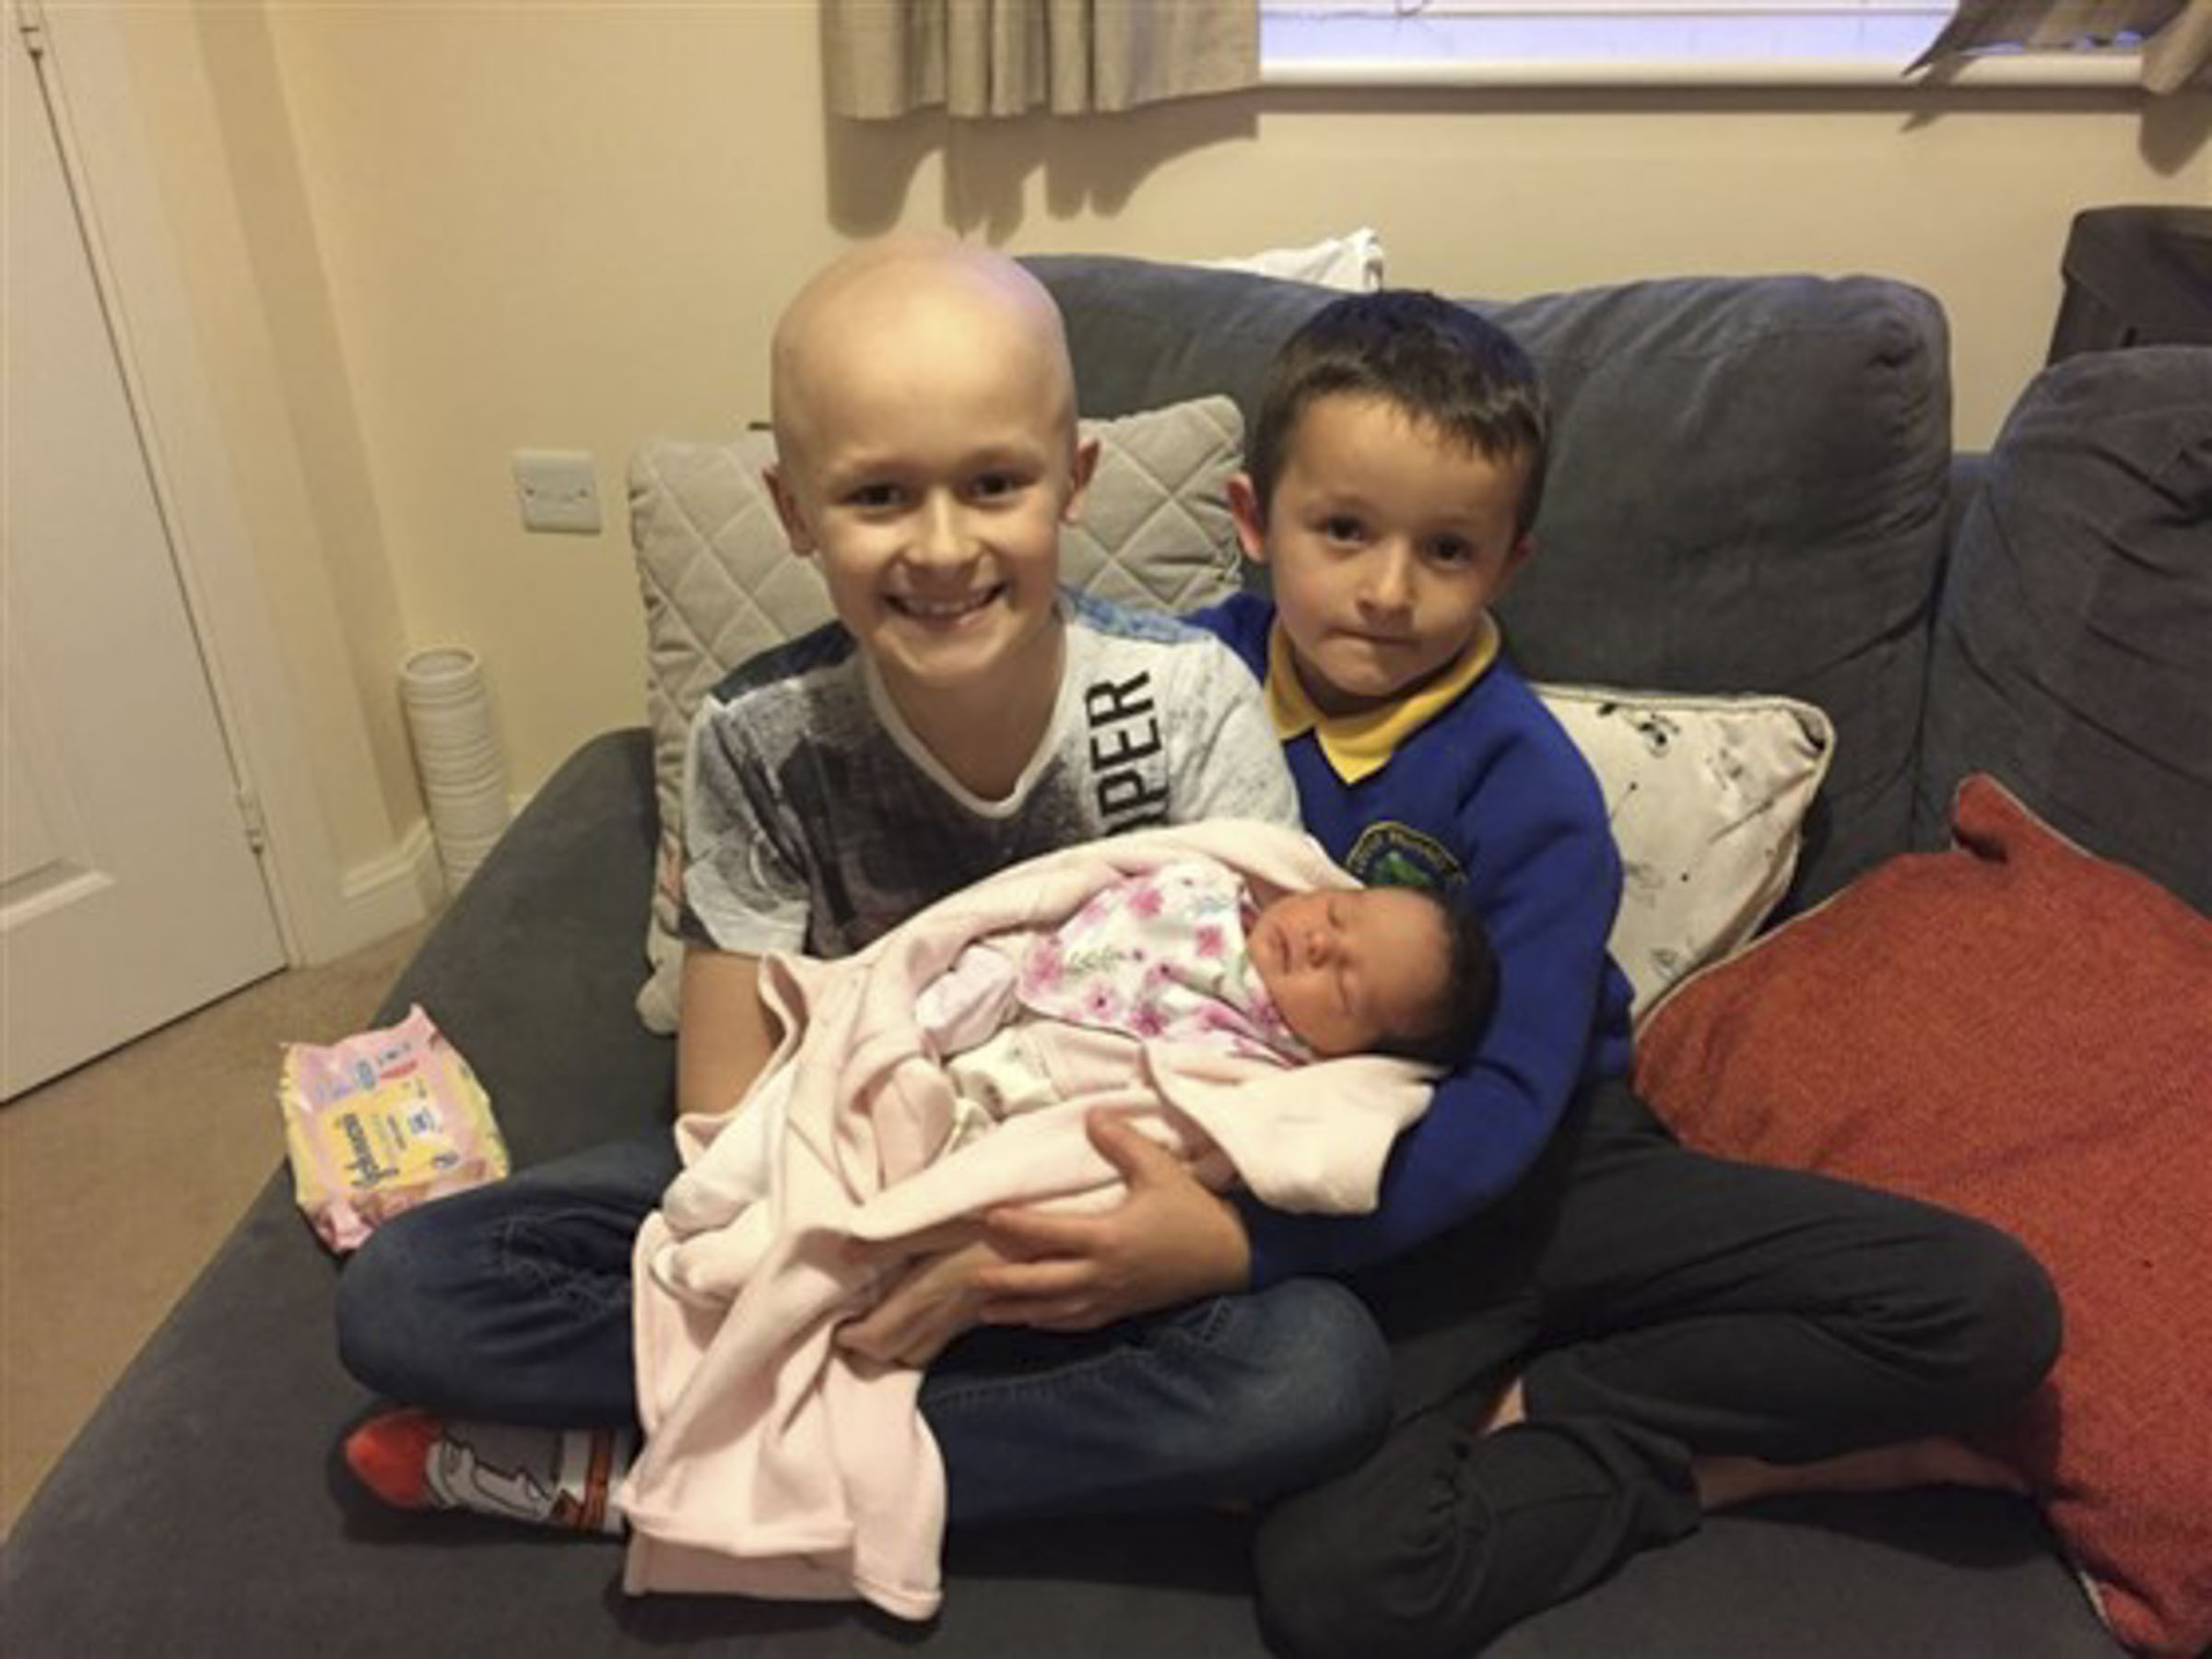 9-Year-Old Lives to Meet His Newborn Baby Sister Before Dying of Cancer: 'He Managed to Hang On'